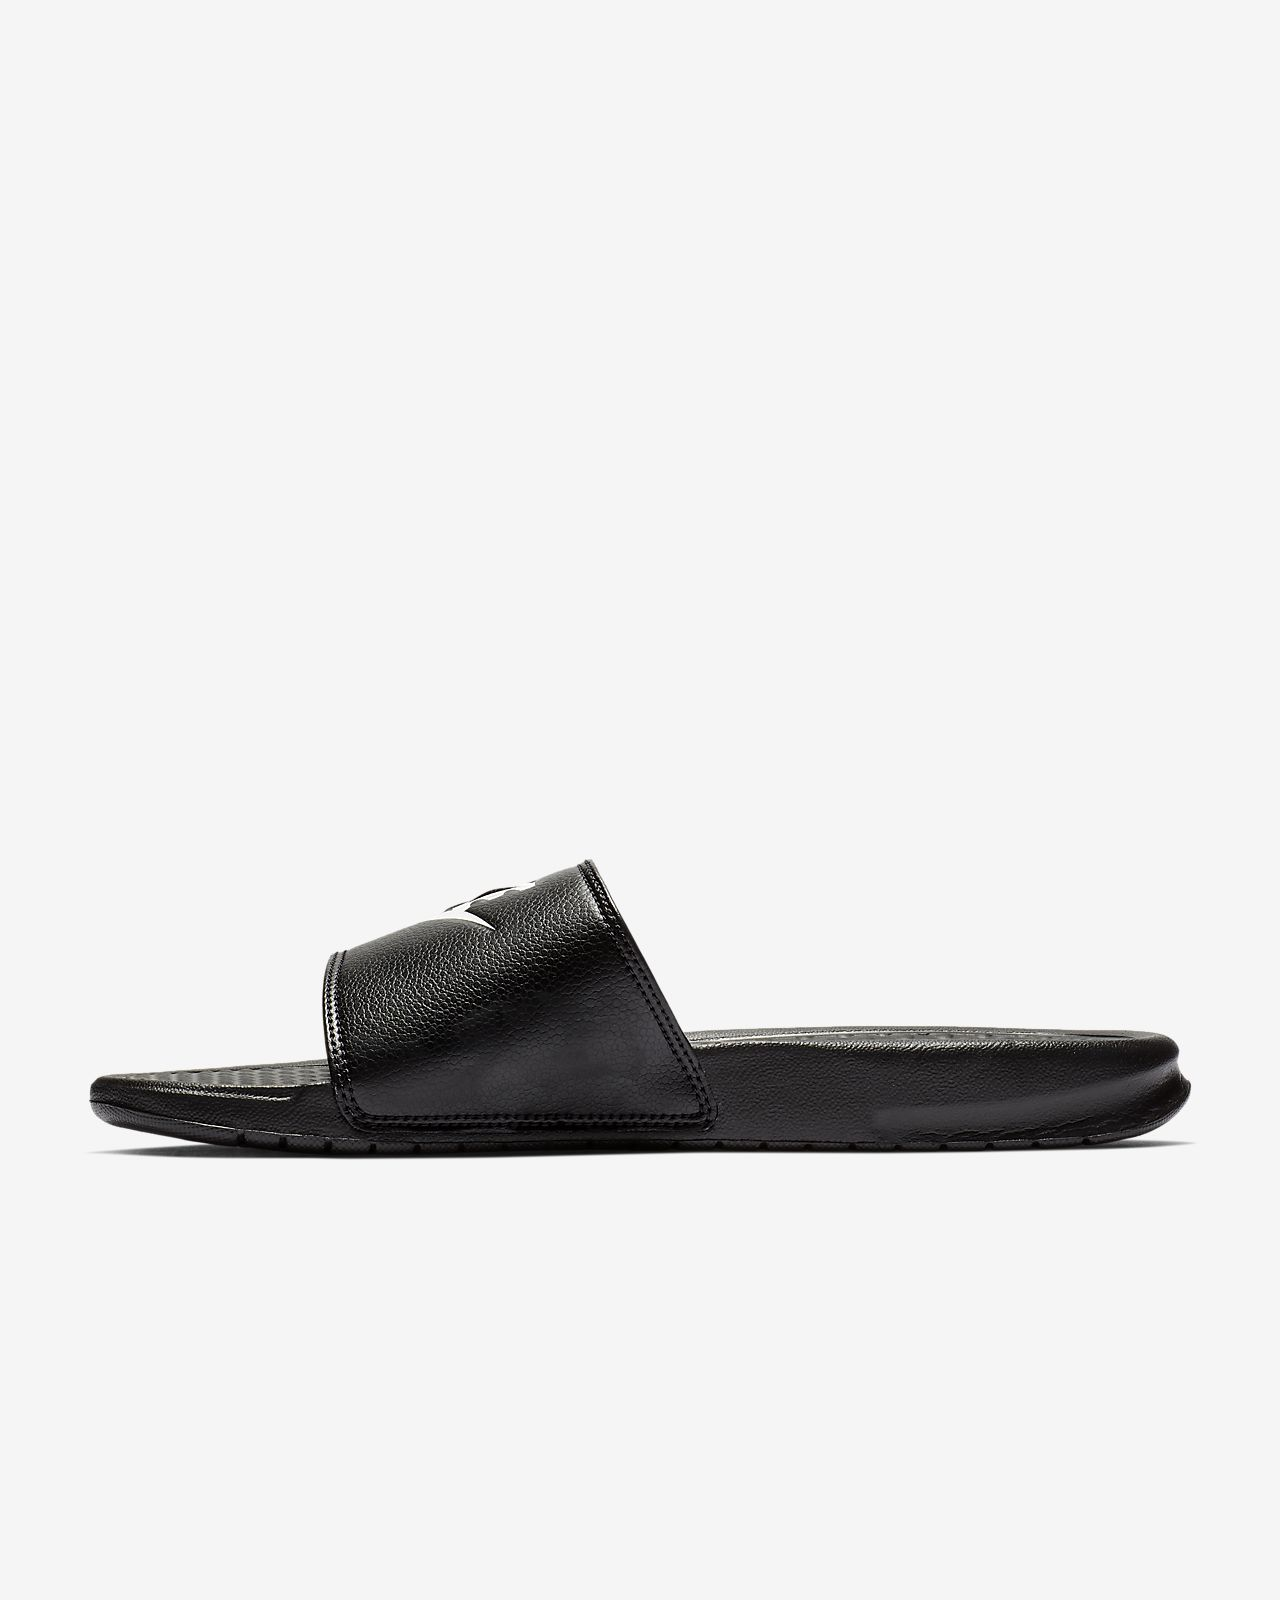 8b7eb2106dc668 Low Resolution Nike Benassi Slide Nike Benassi Slide